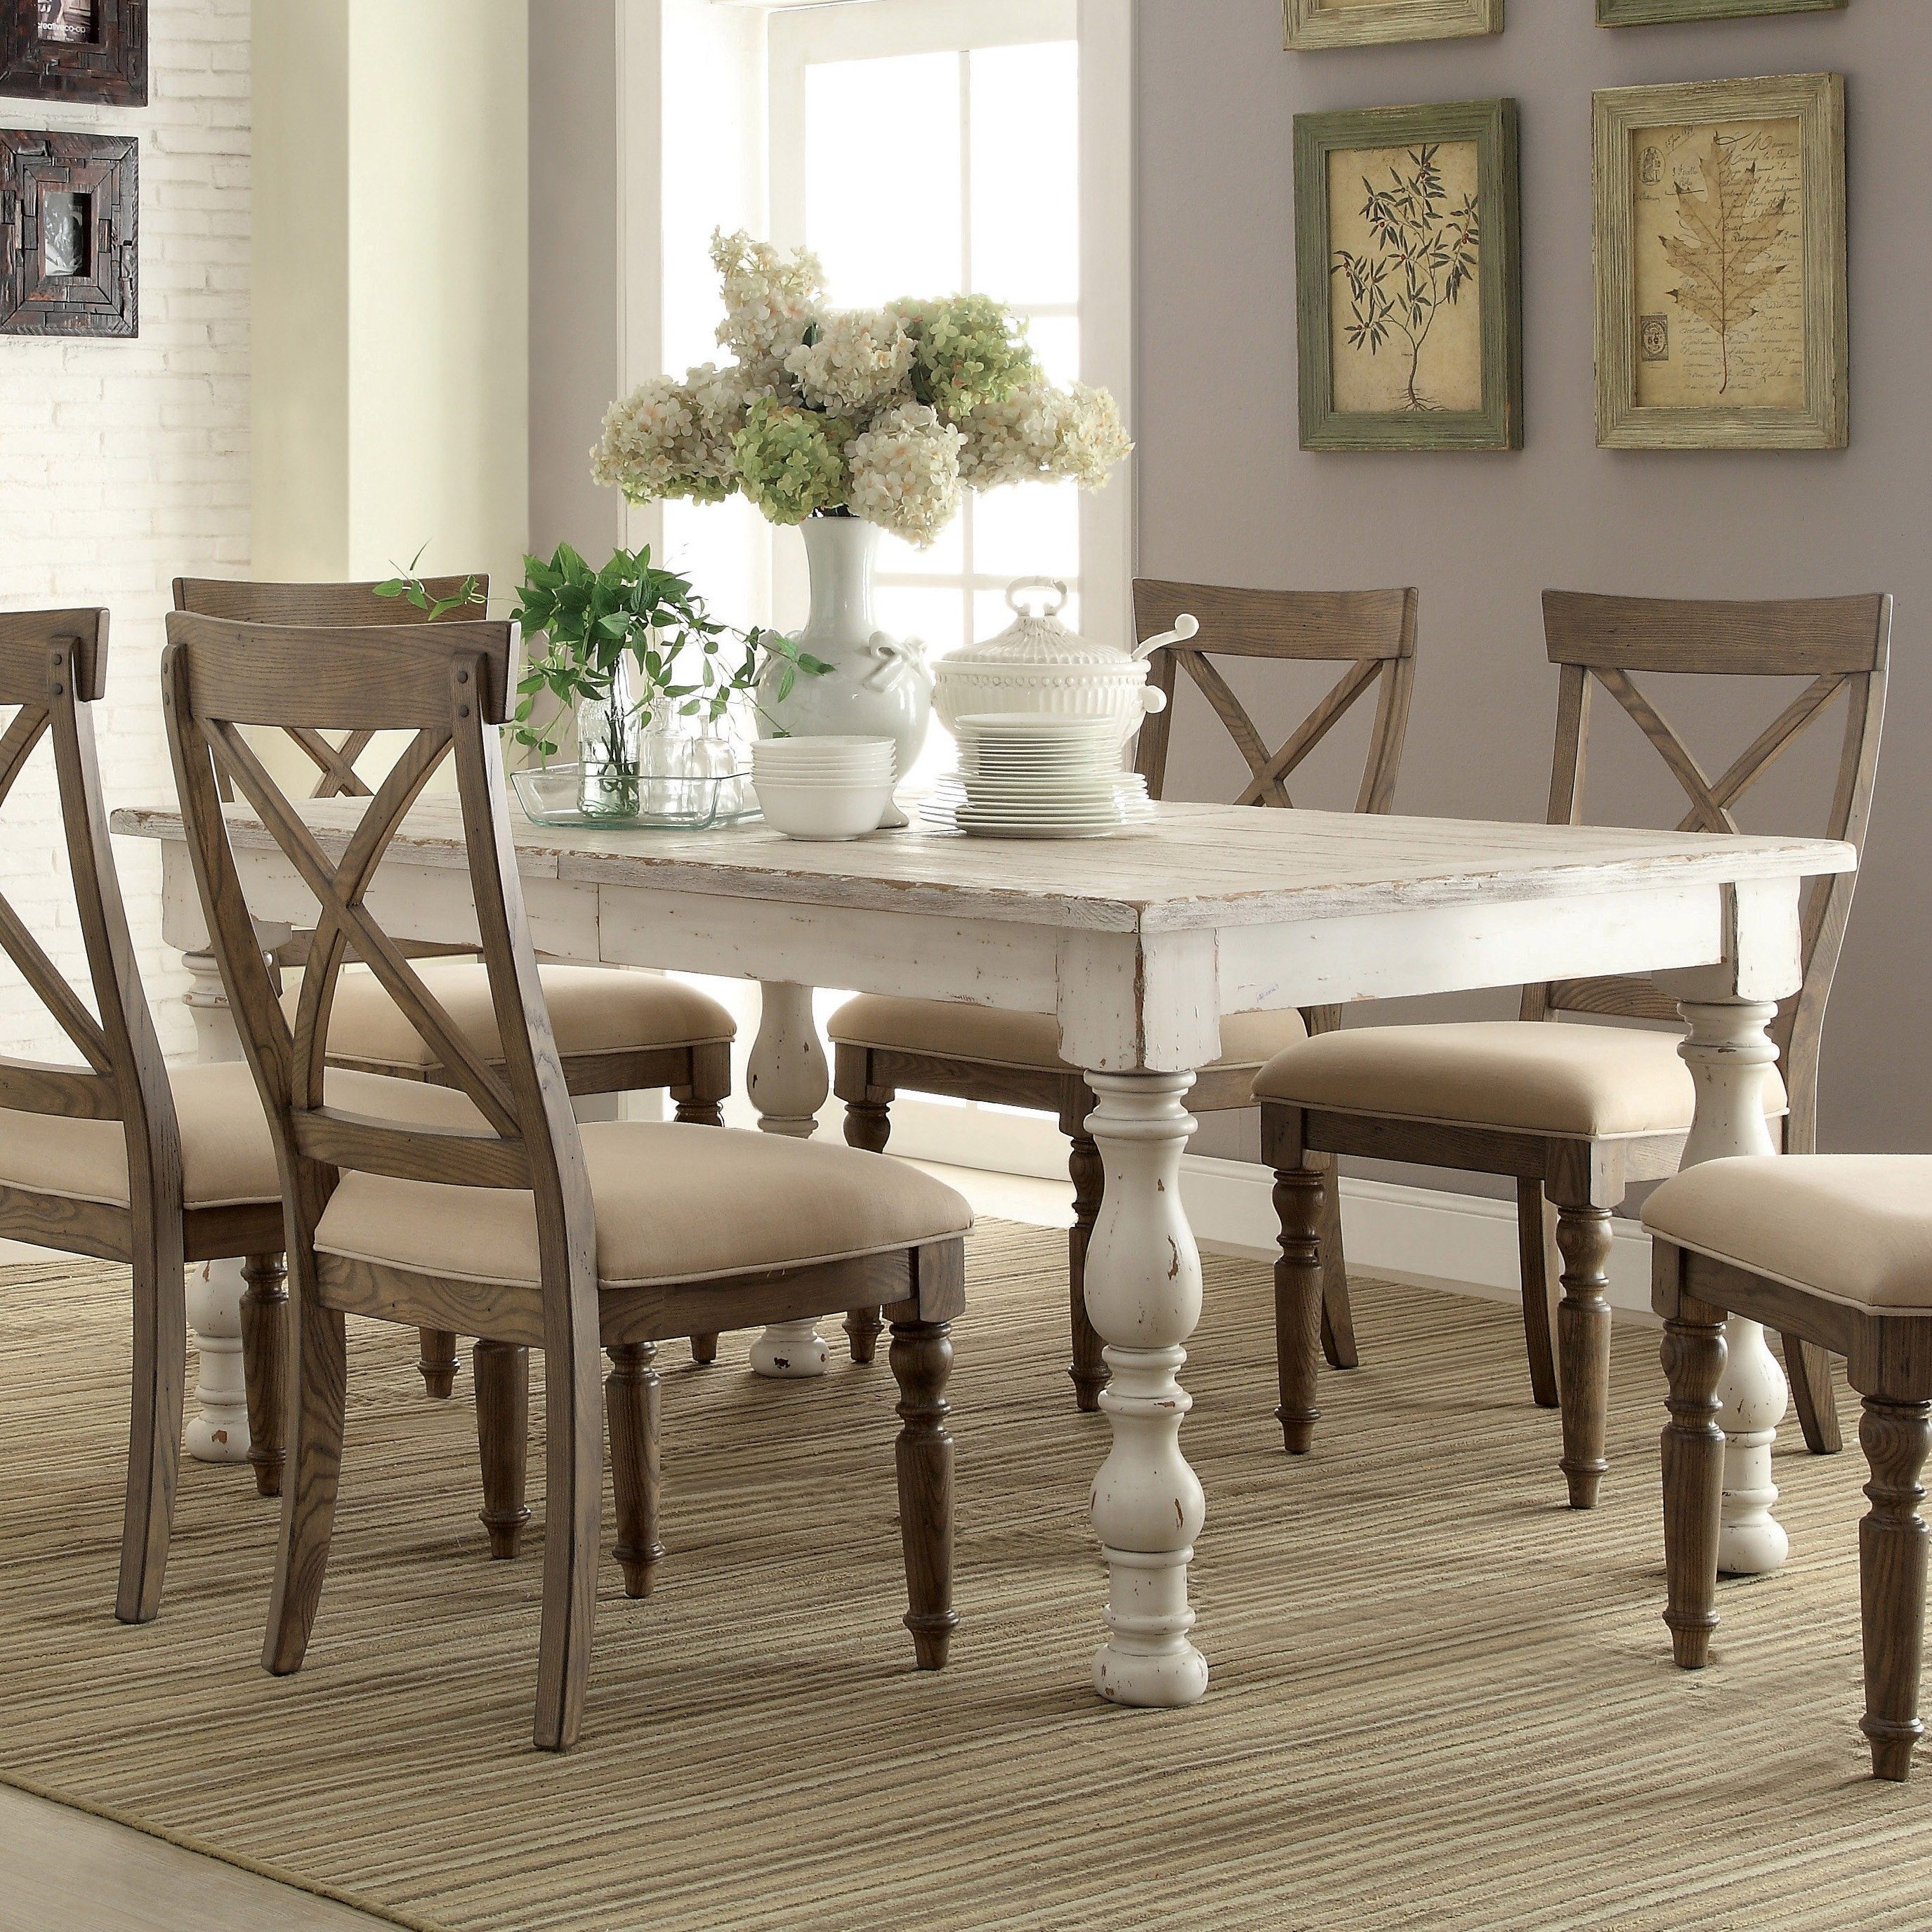 Aberdeen wood rectangular dining table and chairs in for Dining room table sets